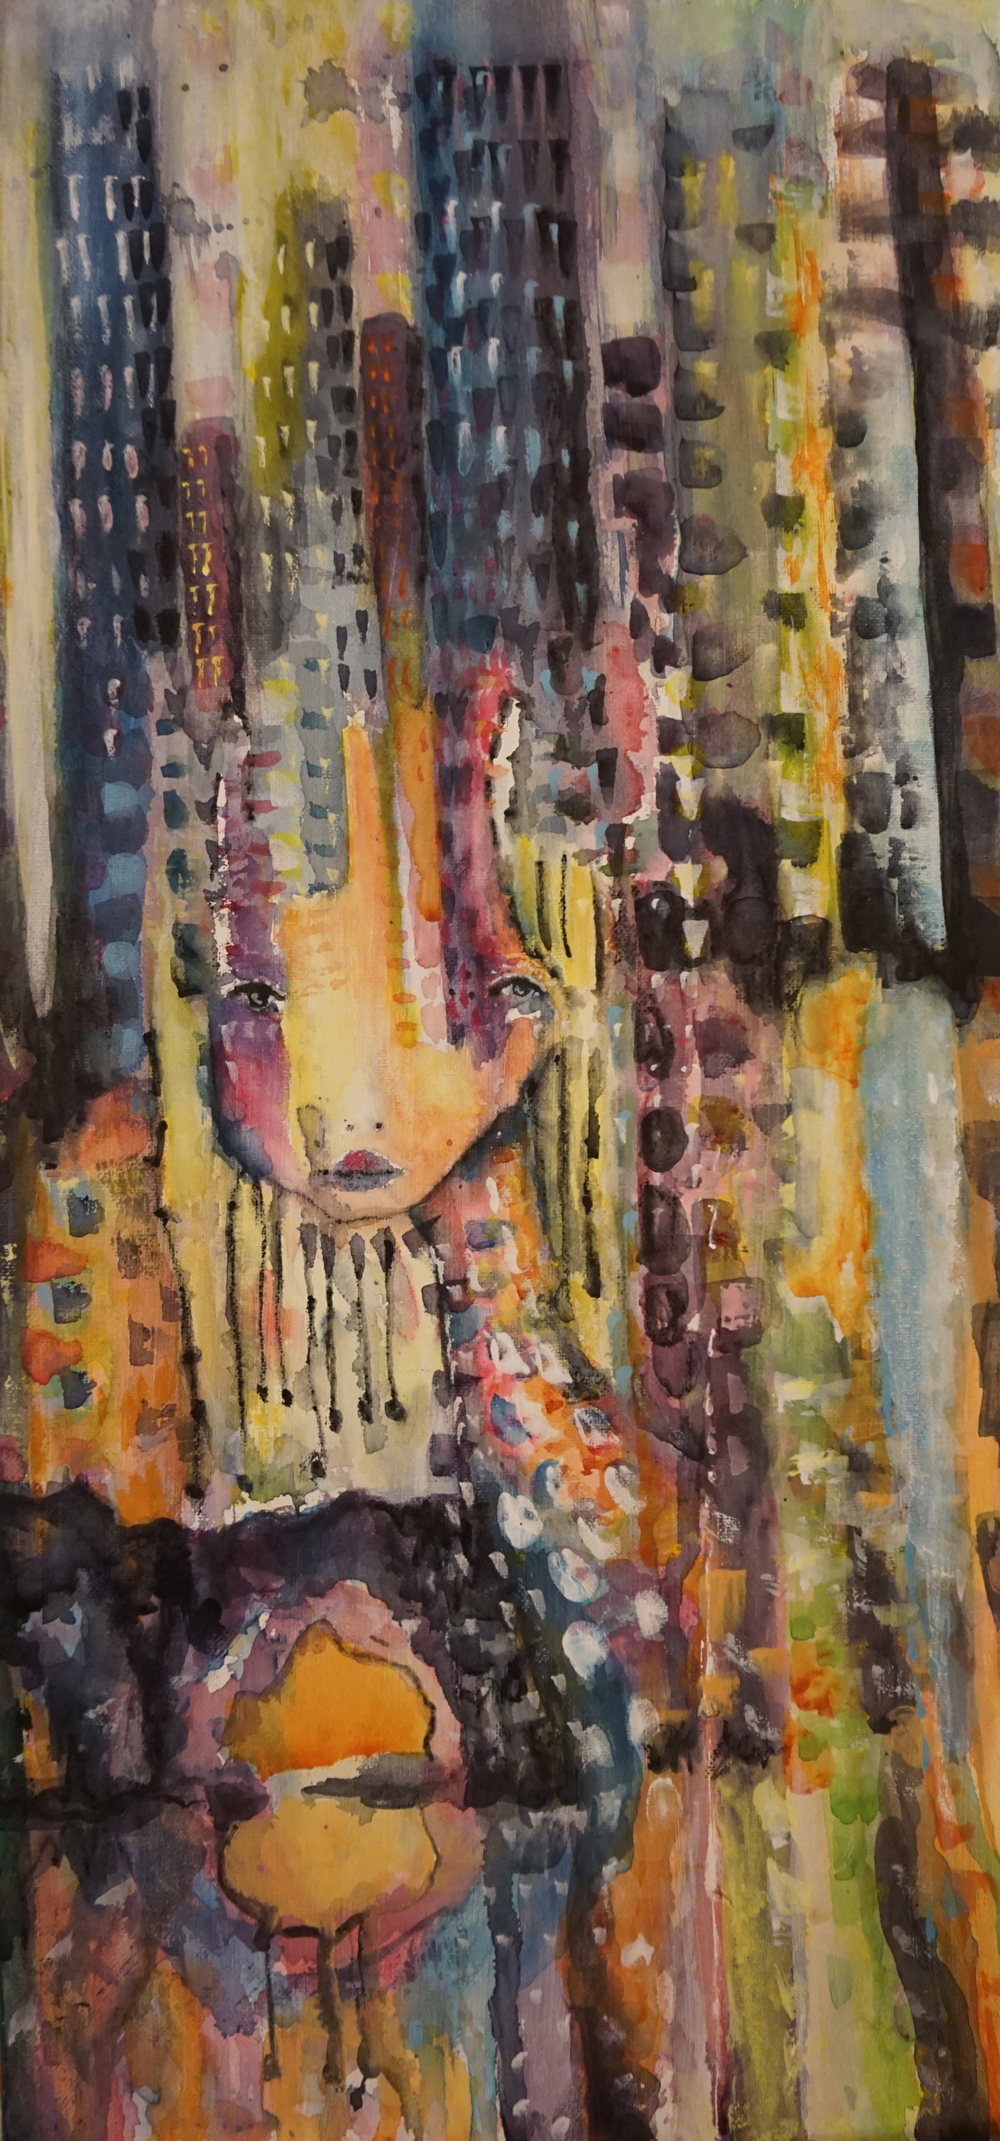 "City Giraffe 11"" x 24"" canvas (sold)"